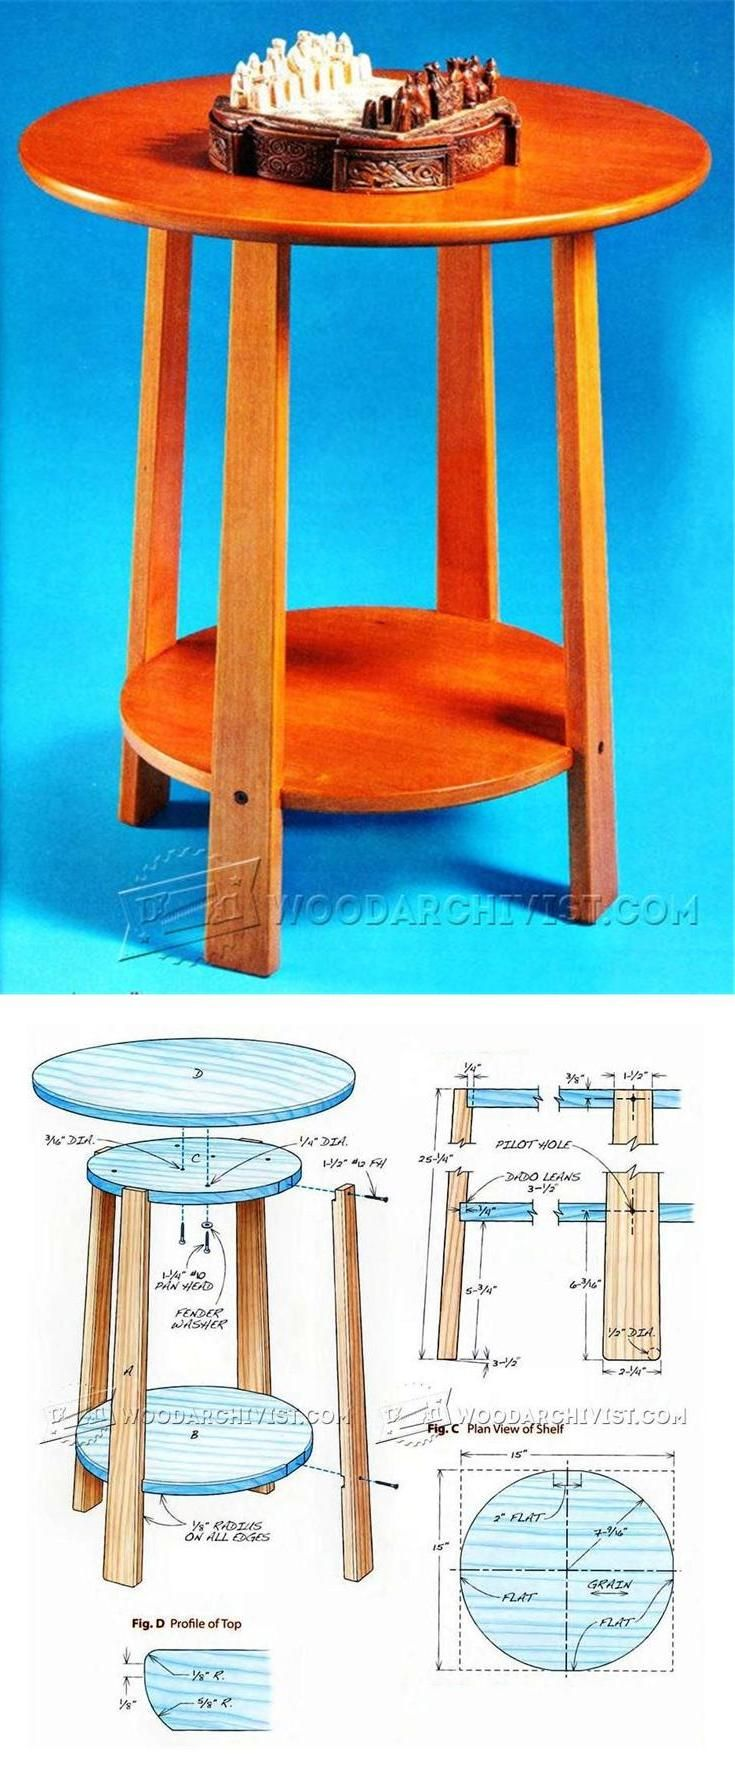 Side Table Plans - Furniture Plans and Projects | WoodArchivist.com